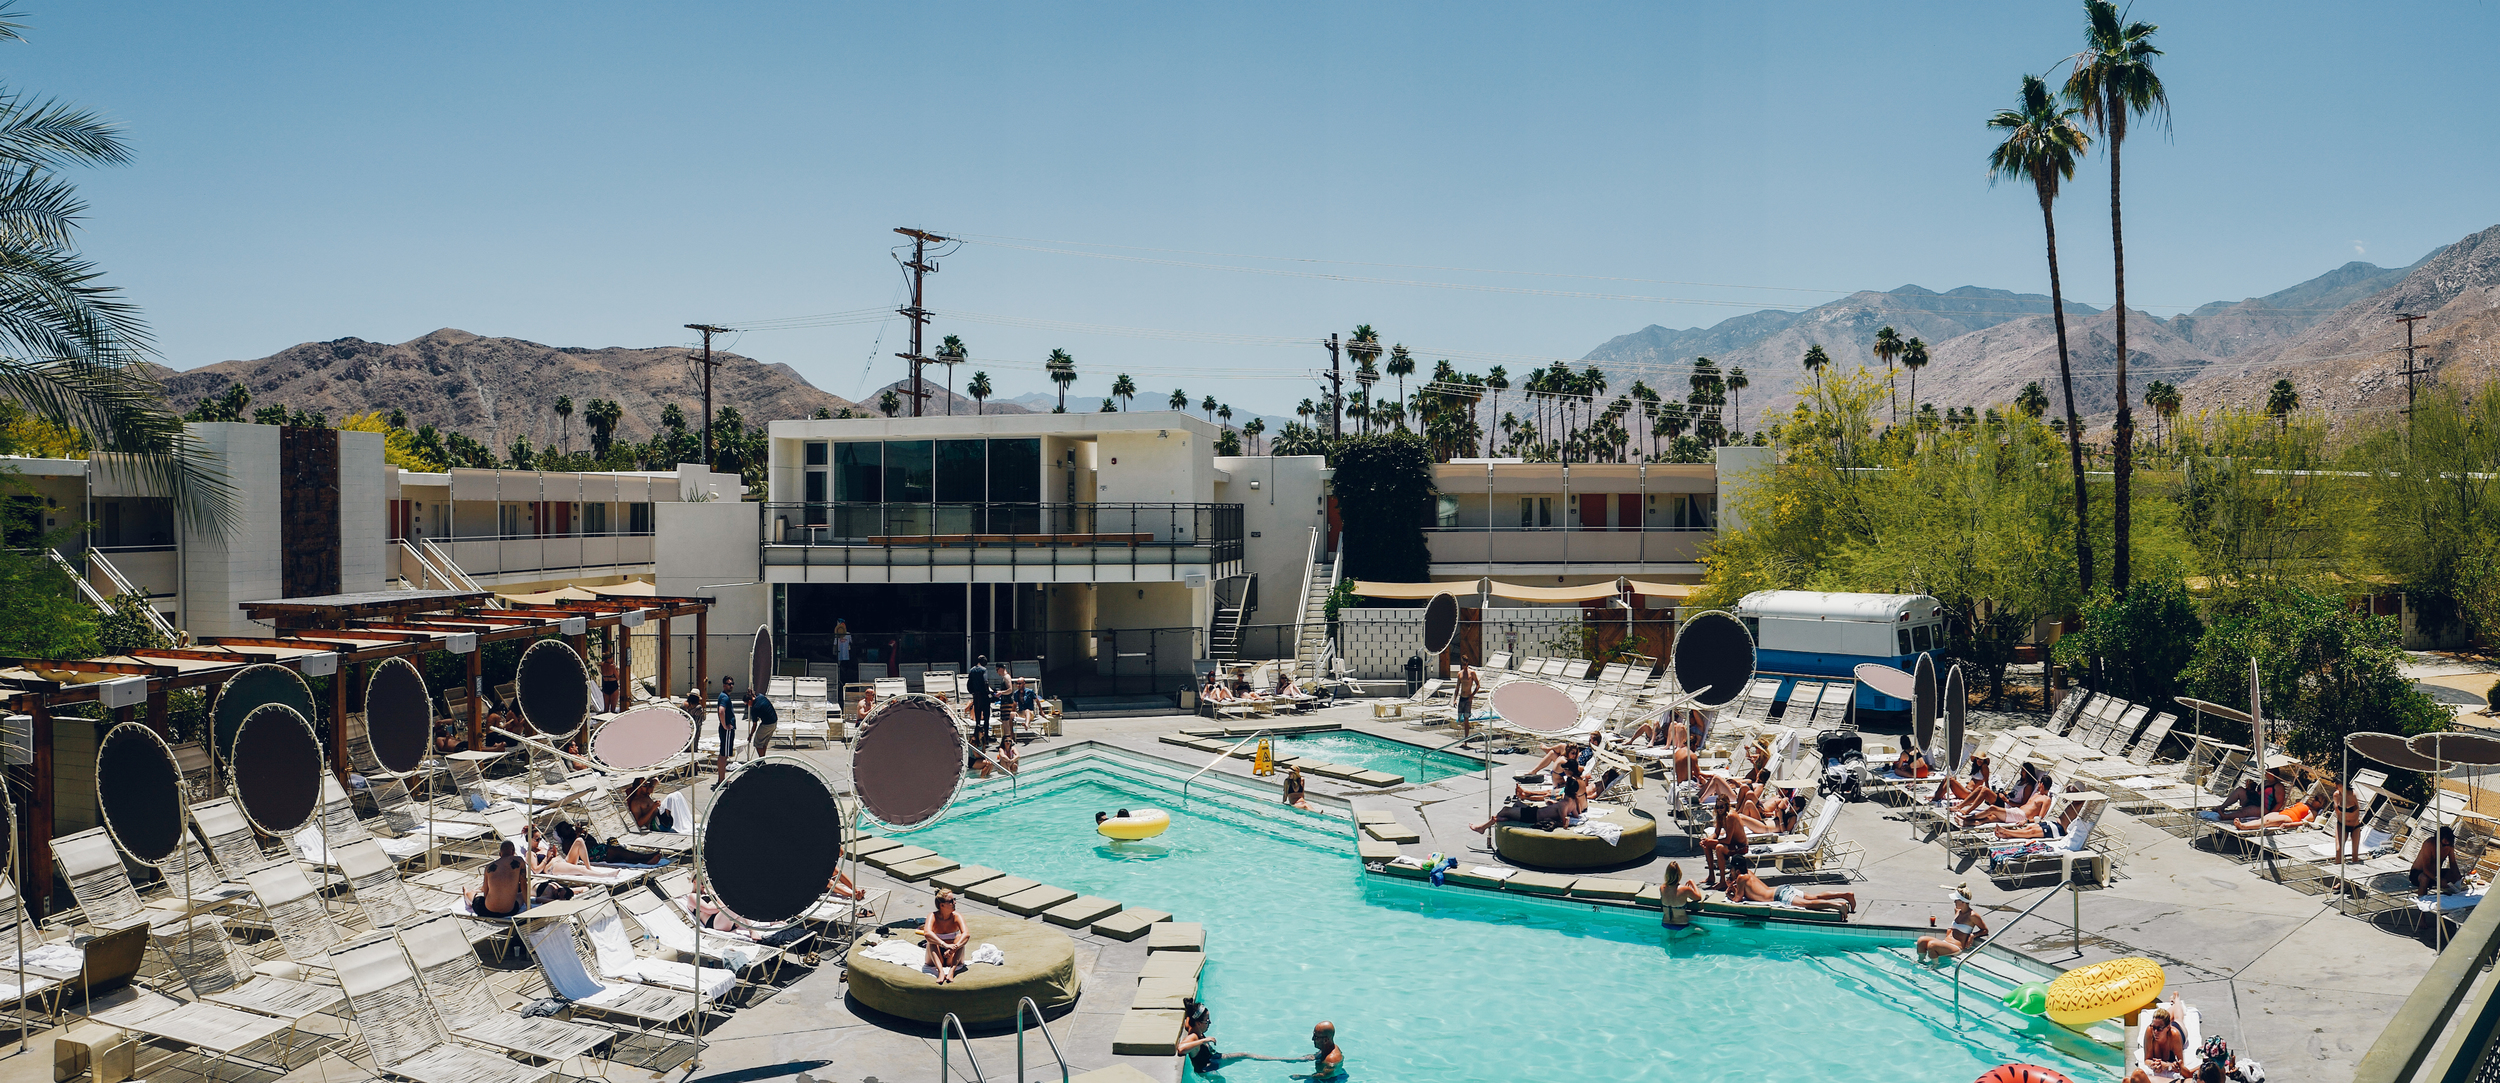 2016 Palm Springs and LA 1040805.jpg